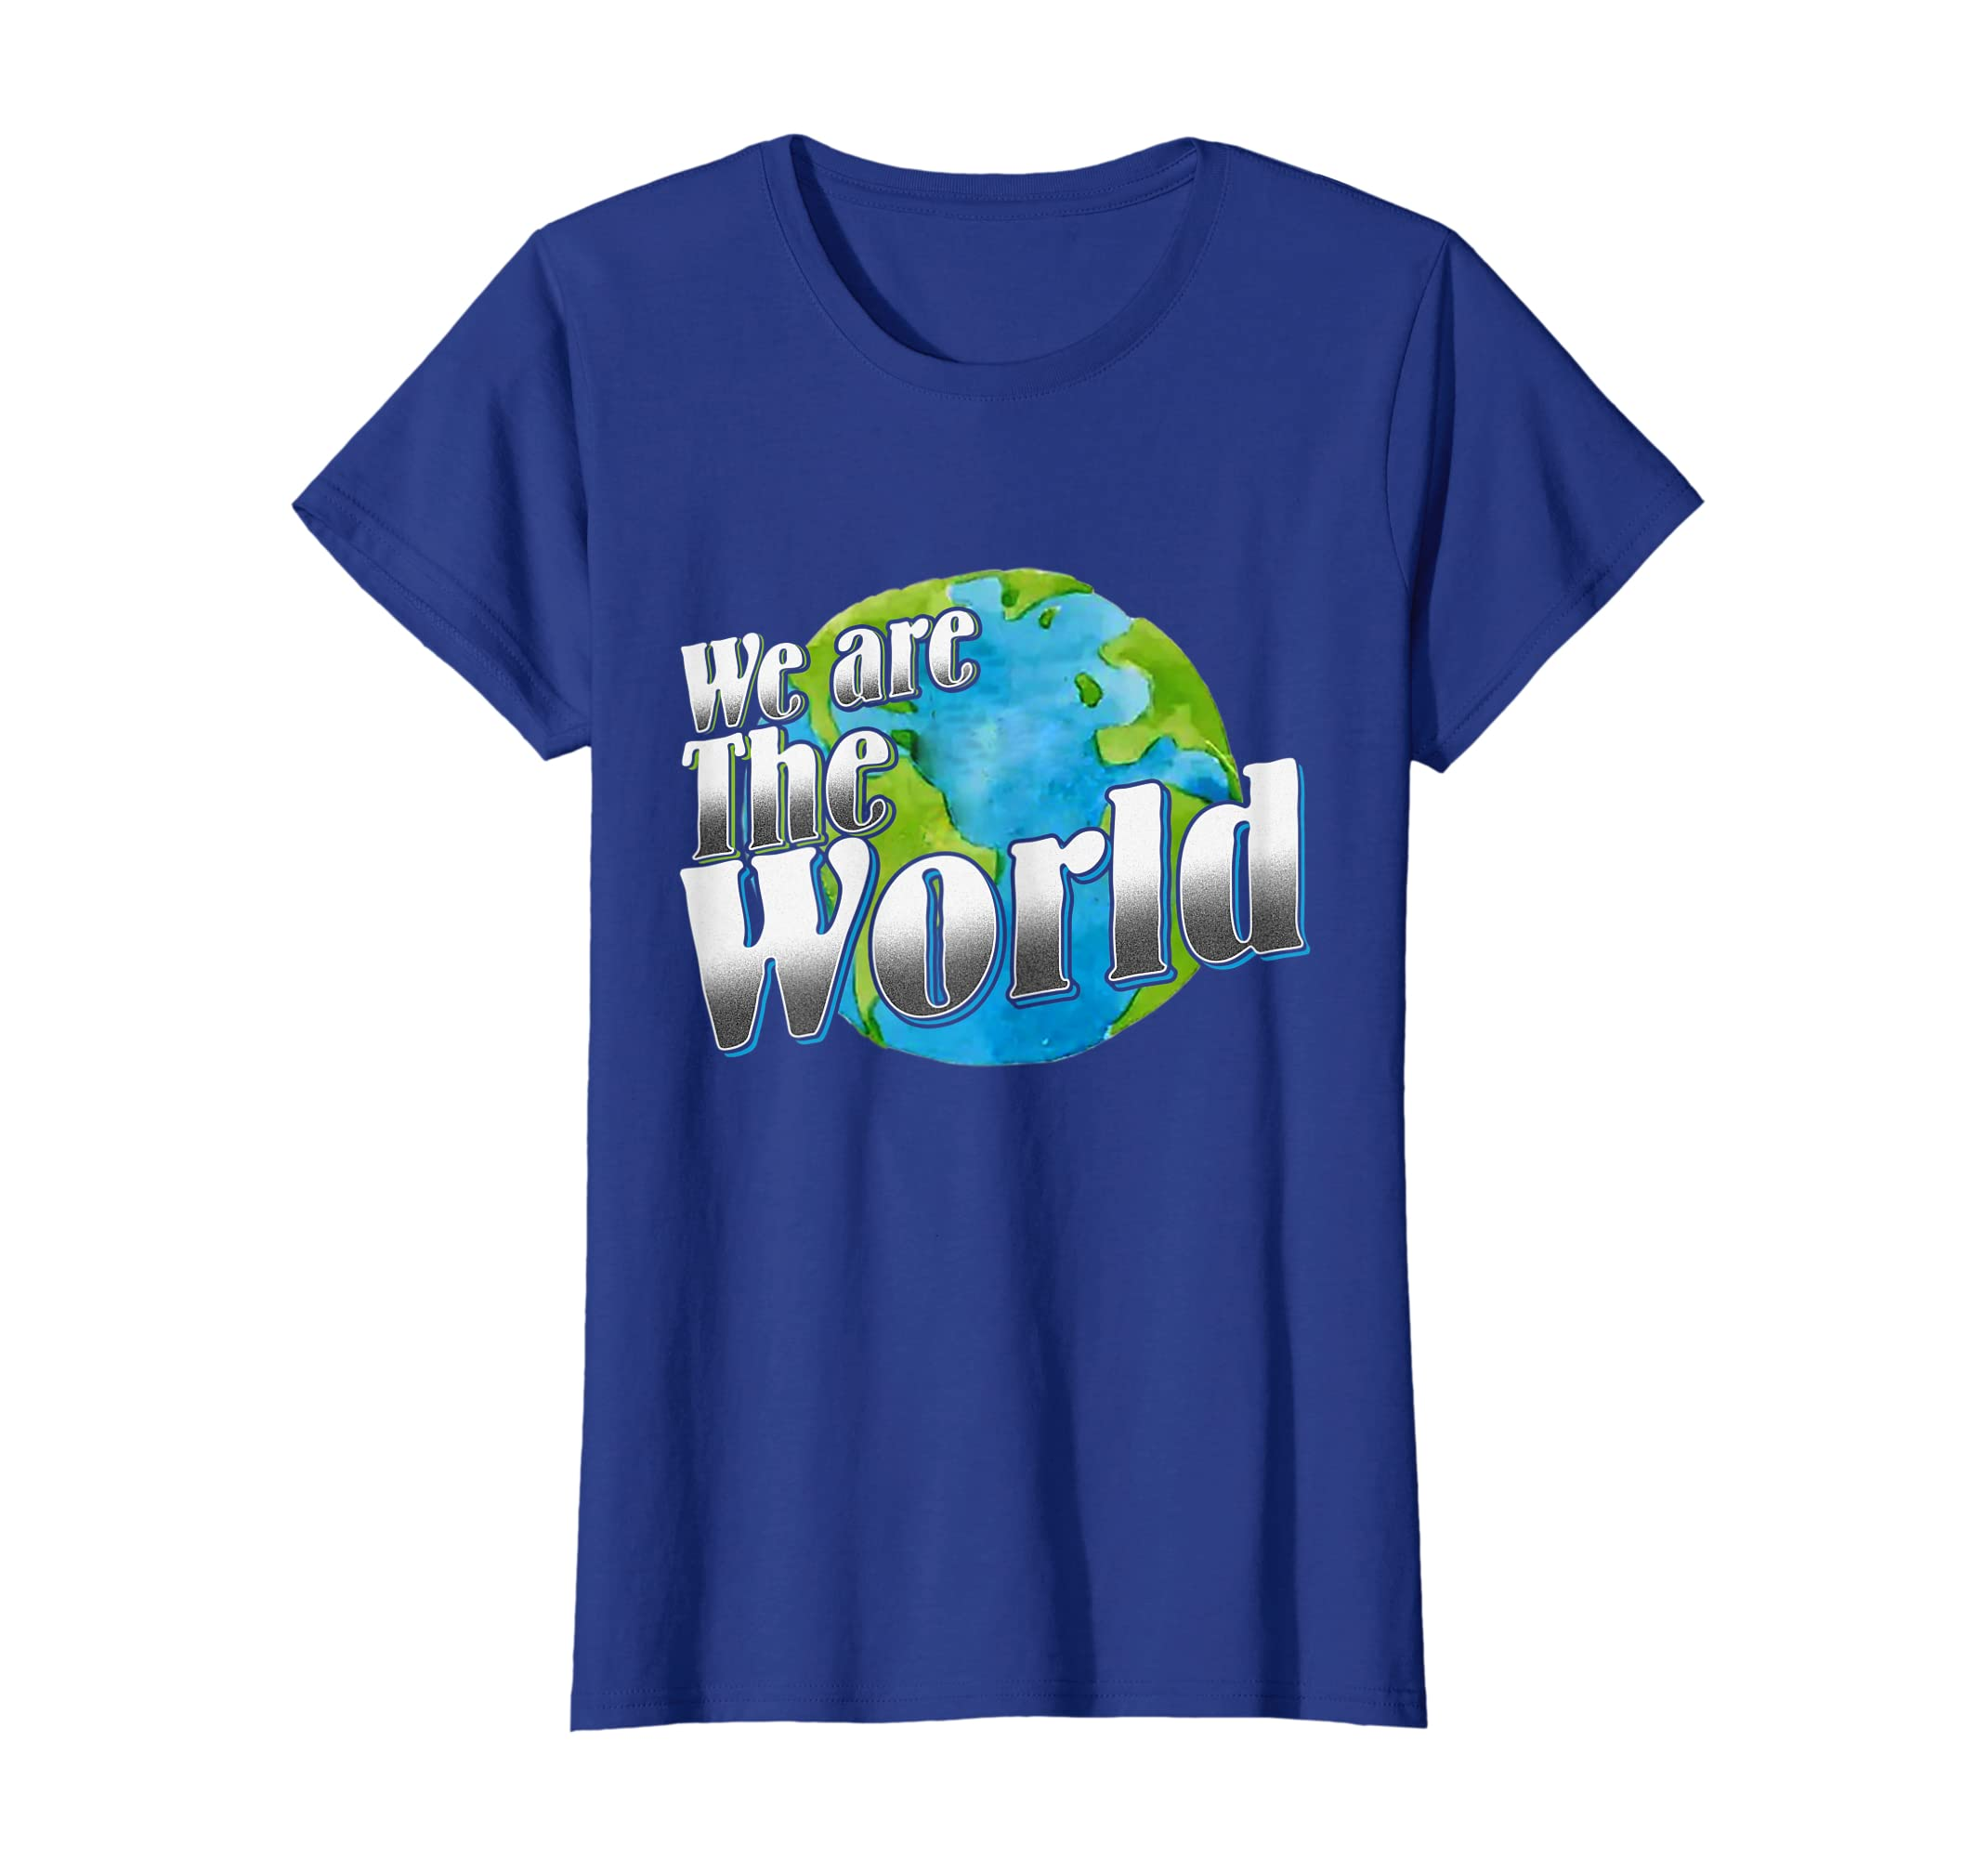 b382f505 Amazon.com: We Are The World T-shirt: Clothing